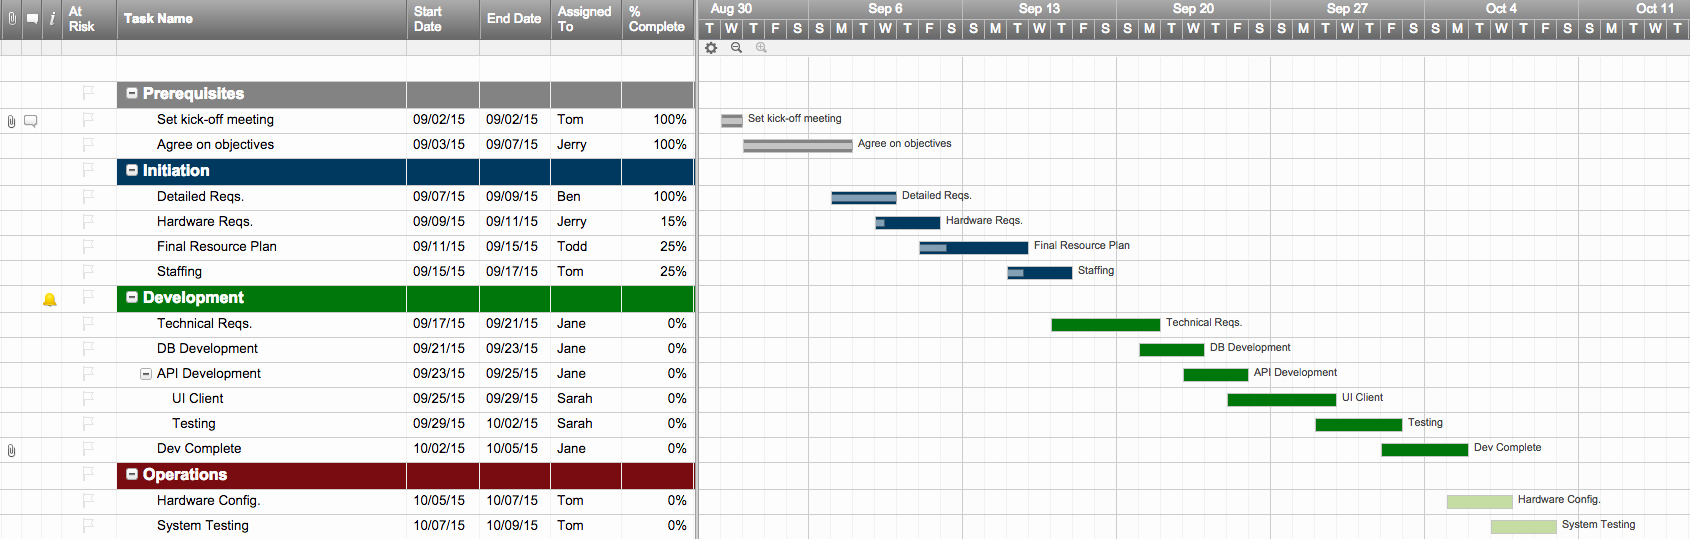 Milestone Plan Template In Excel New Project Management Excel Gantt Chart Template Free 10